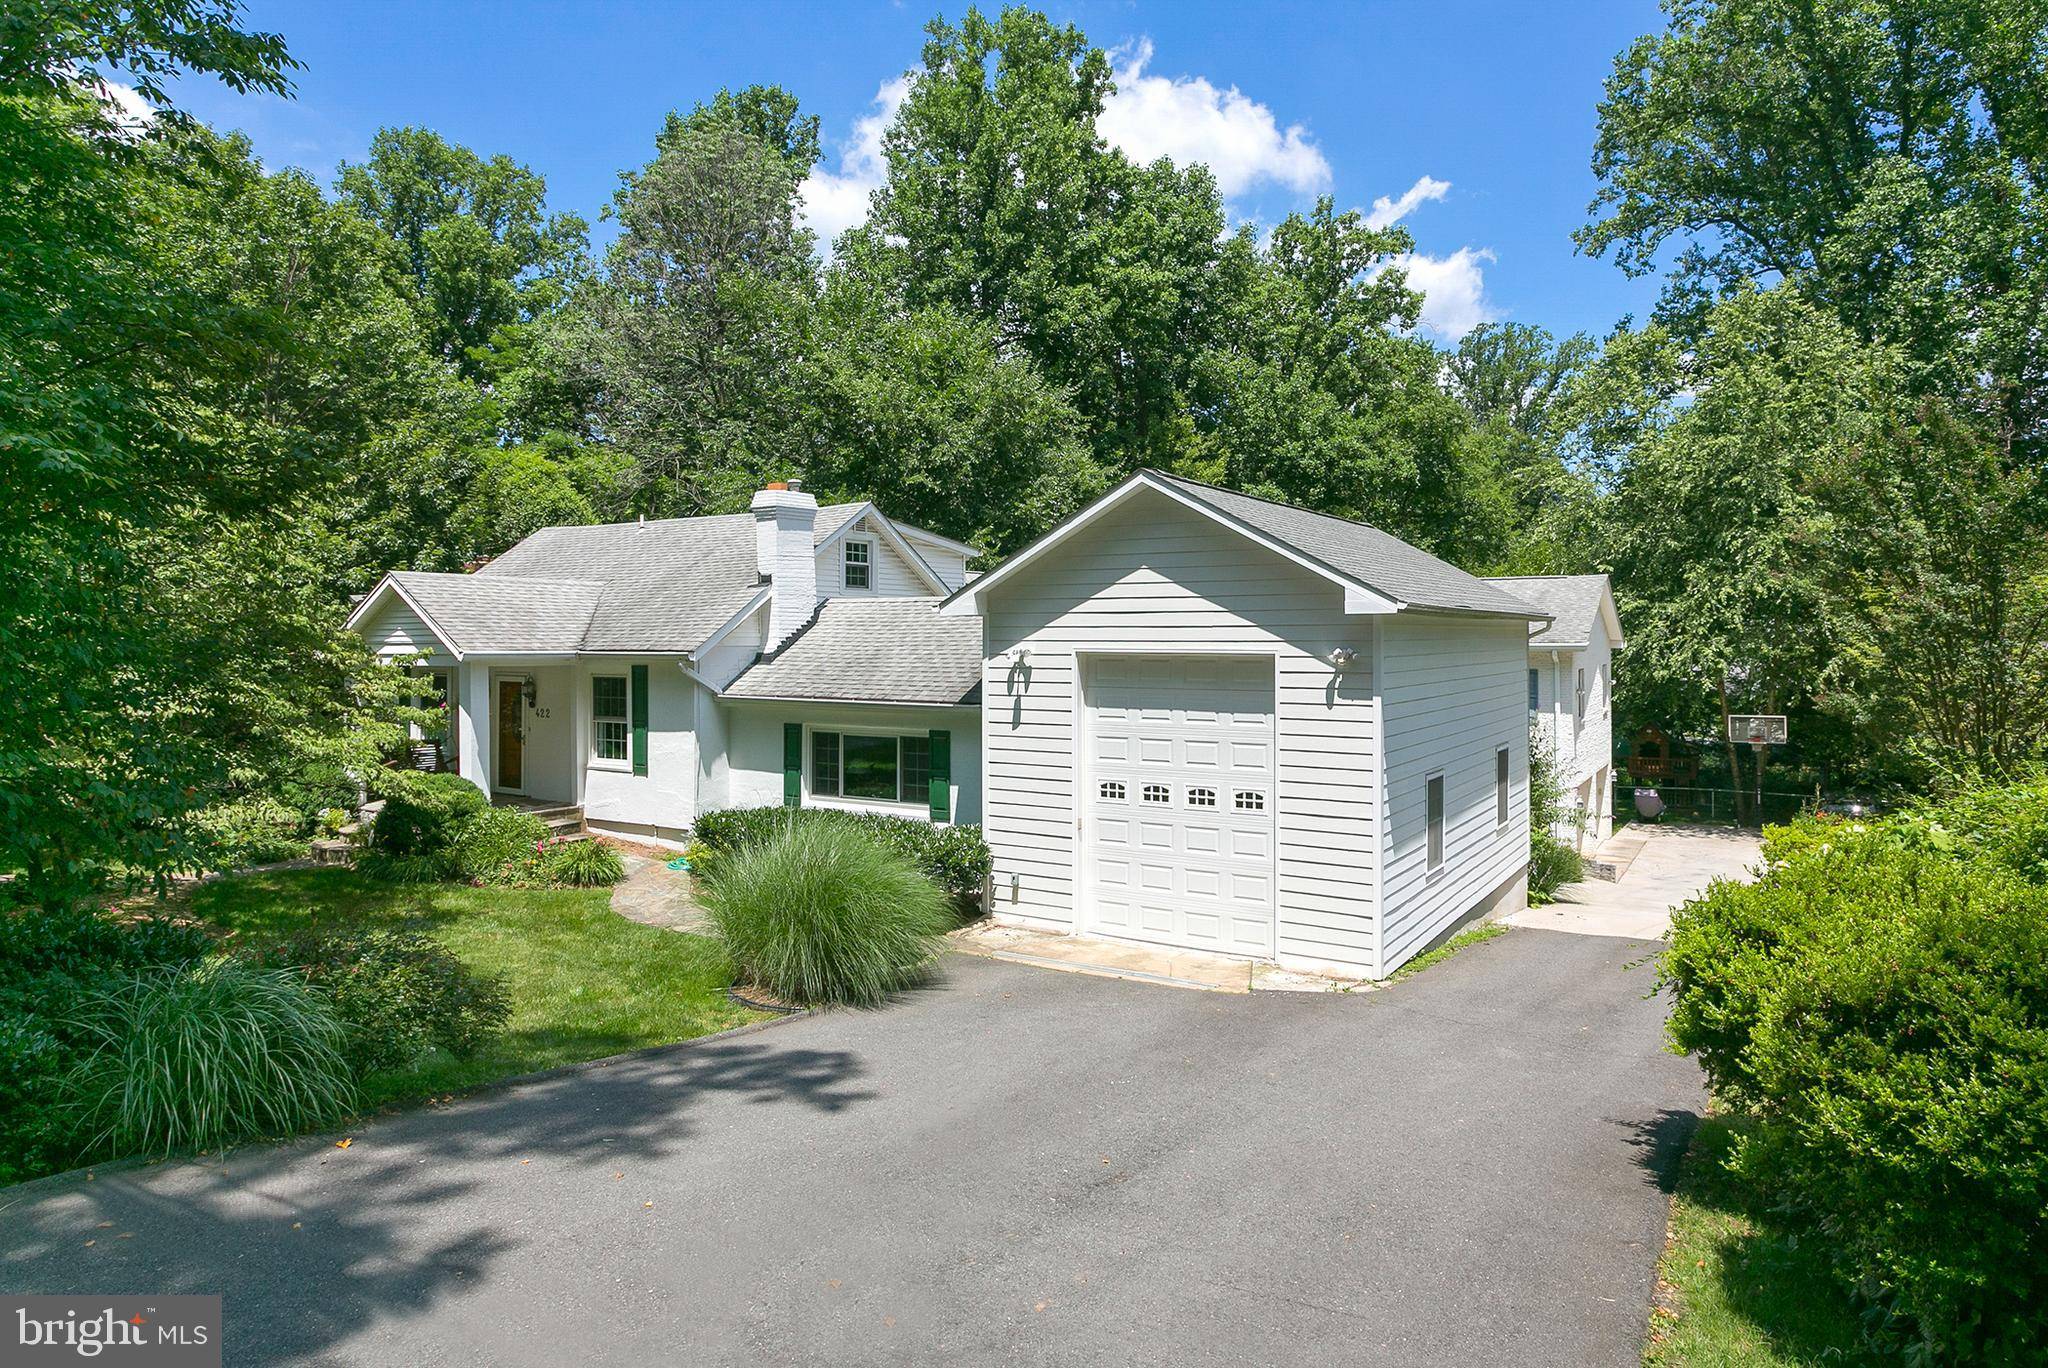 422 GREAT FALLS STREET, FALLS CHURCH, VA 22046